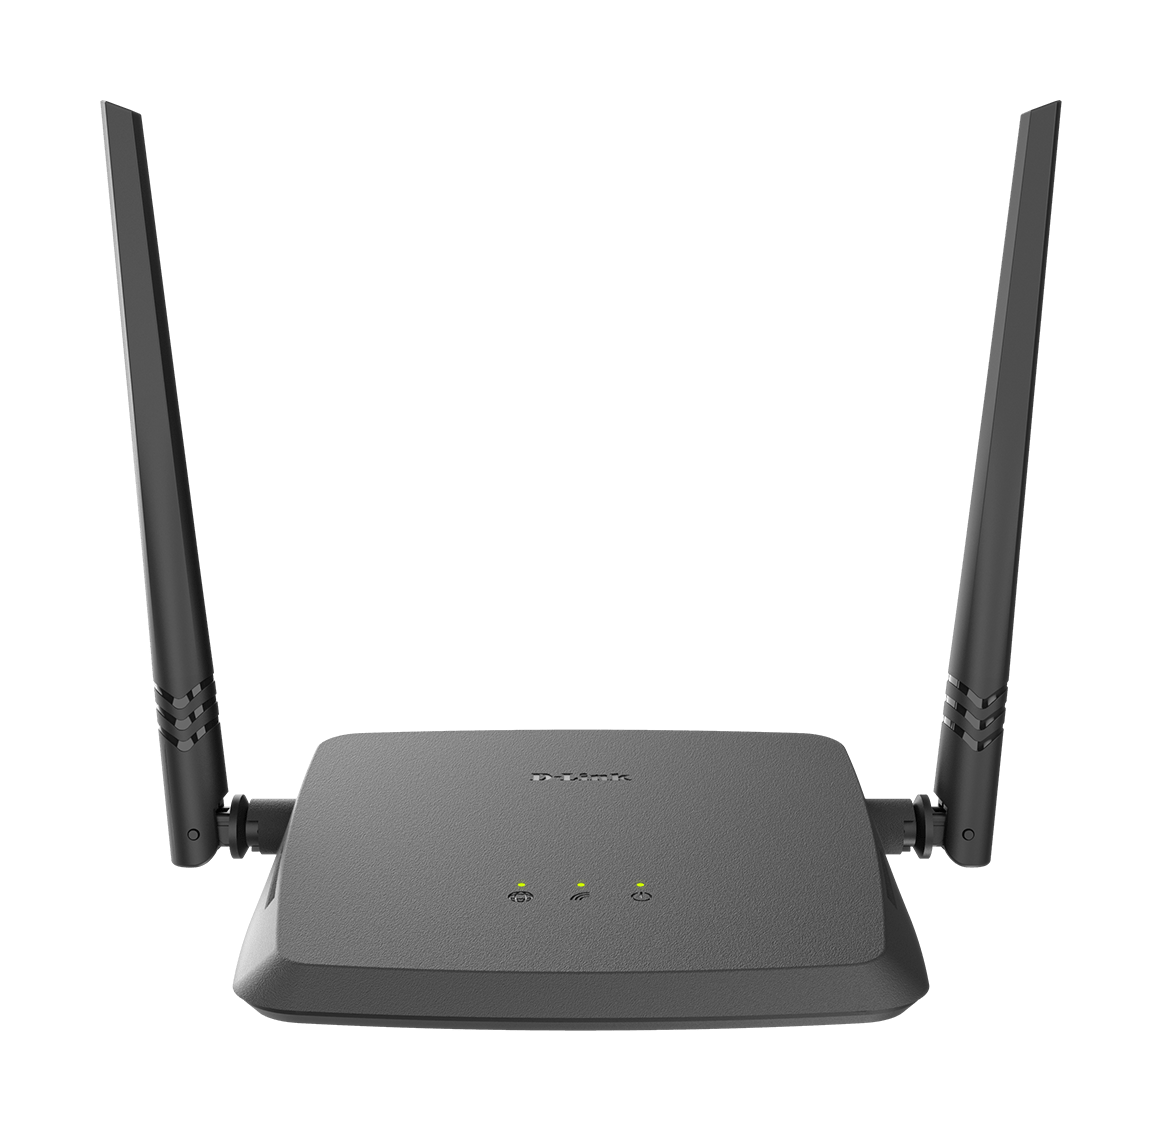 DIR 615 X1 Roteador Wireless N 300Mbps IPv6